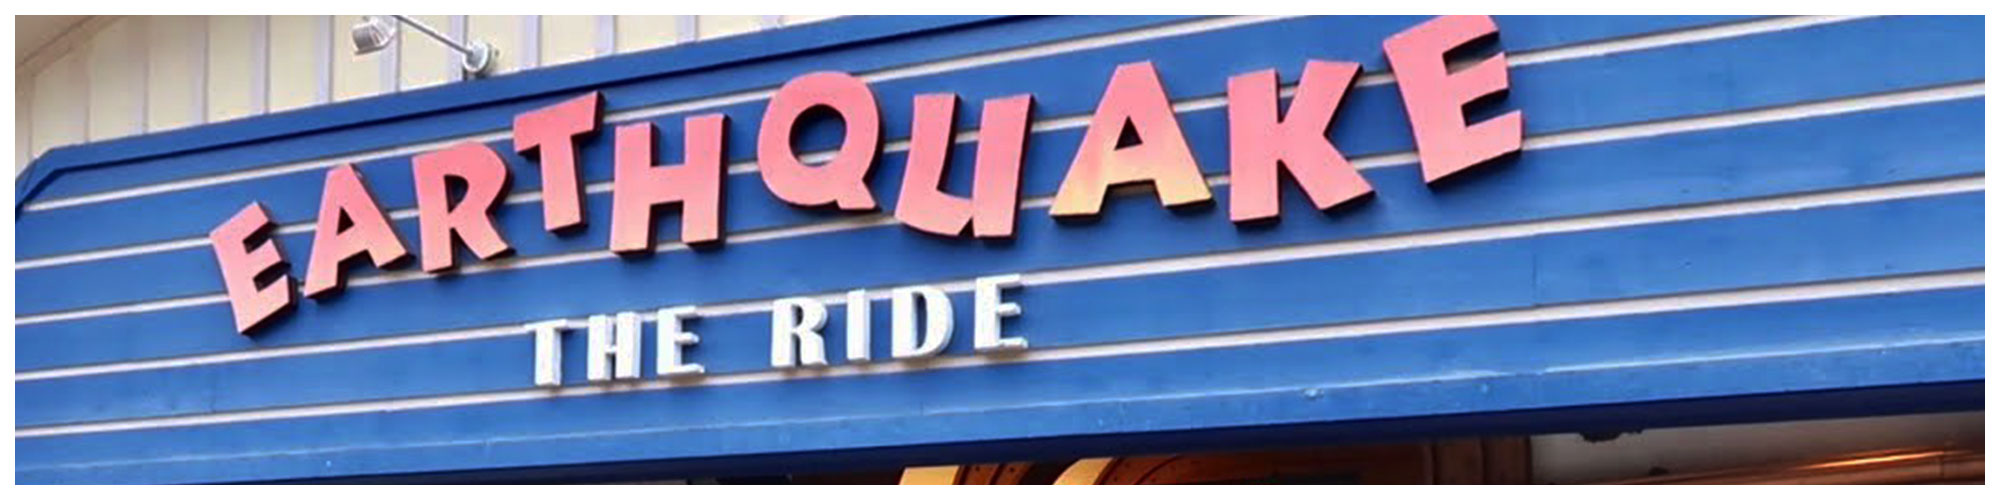 Earthquake The Ride (Header Background) | Gatlinburg Attractions